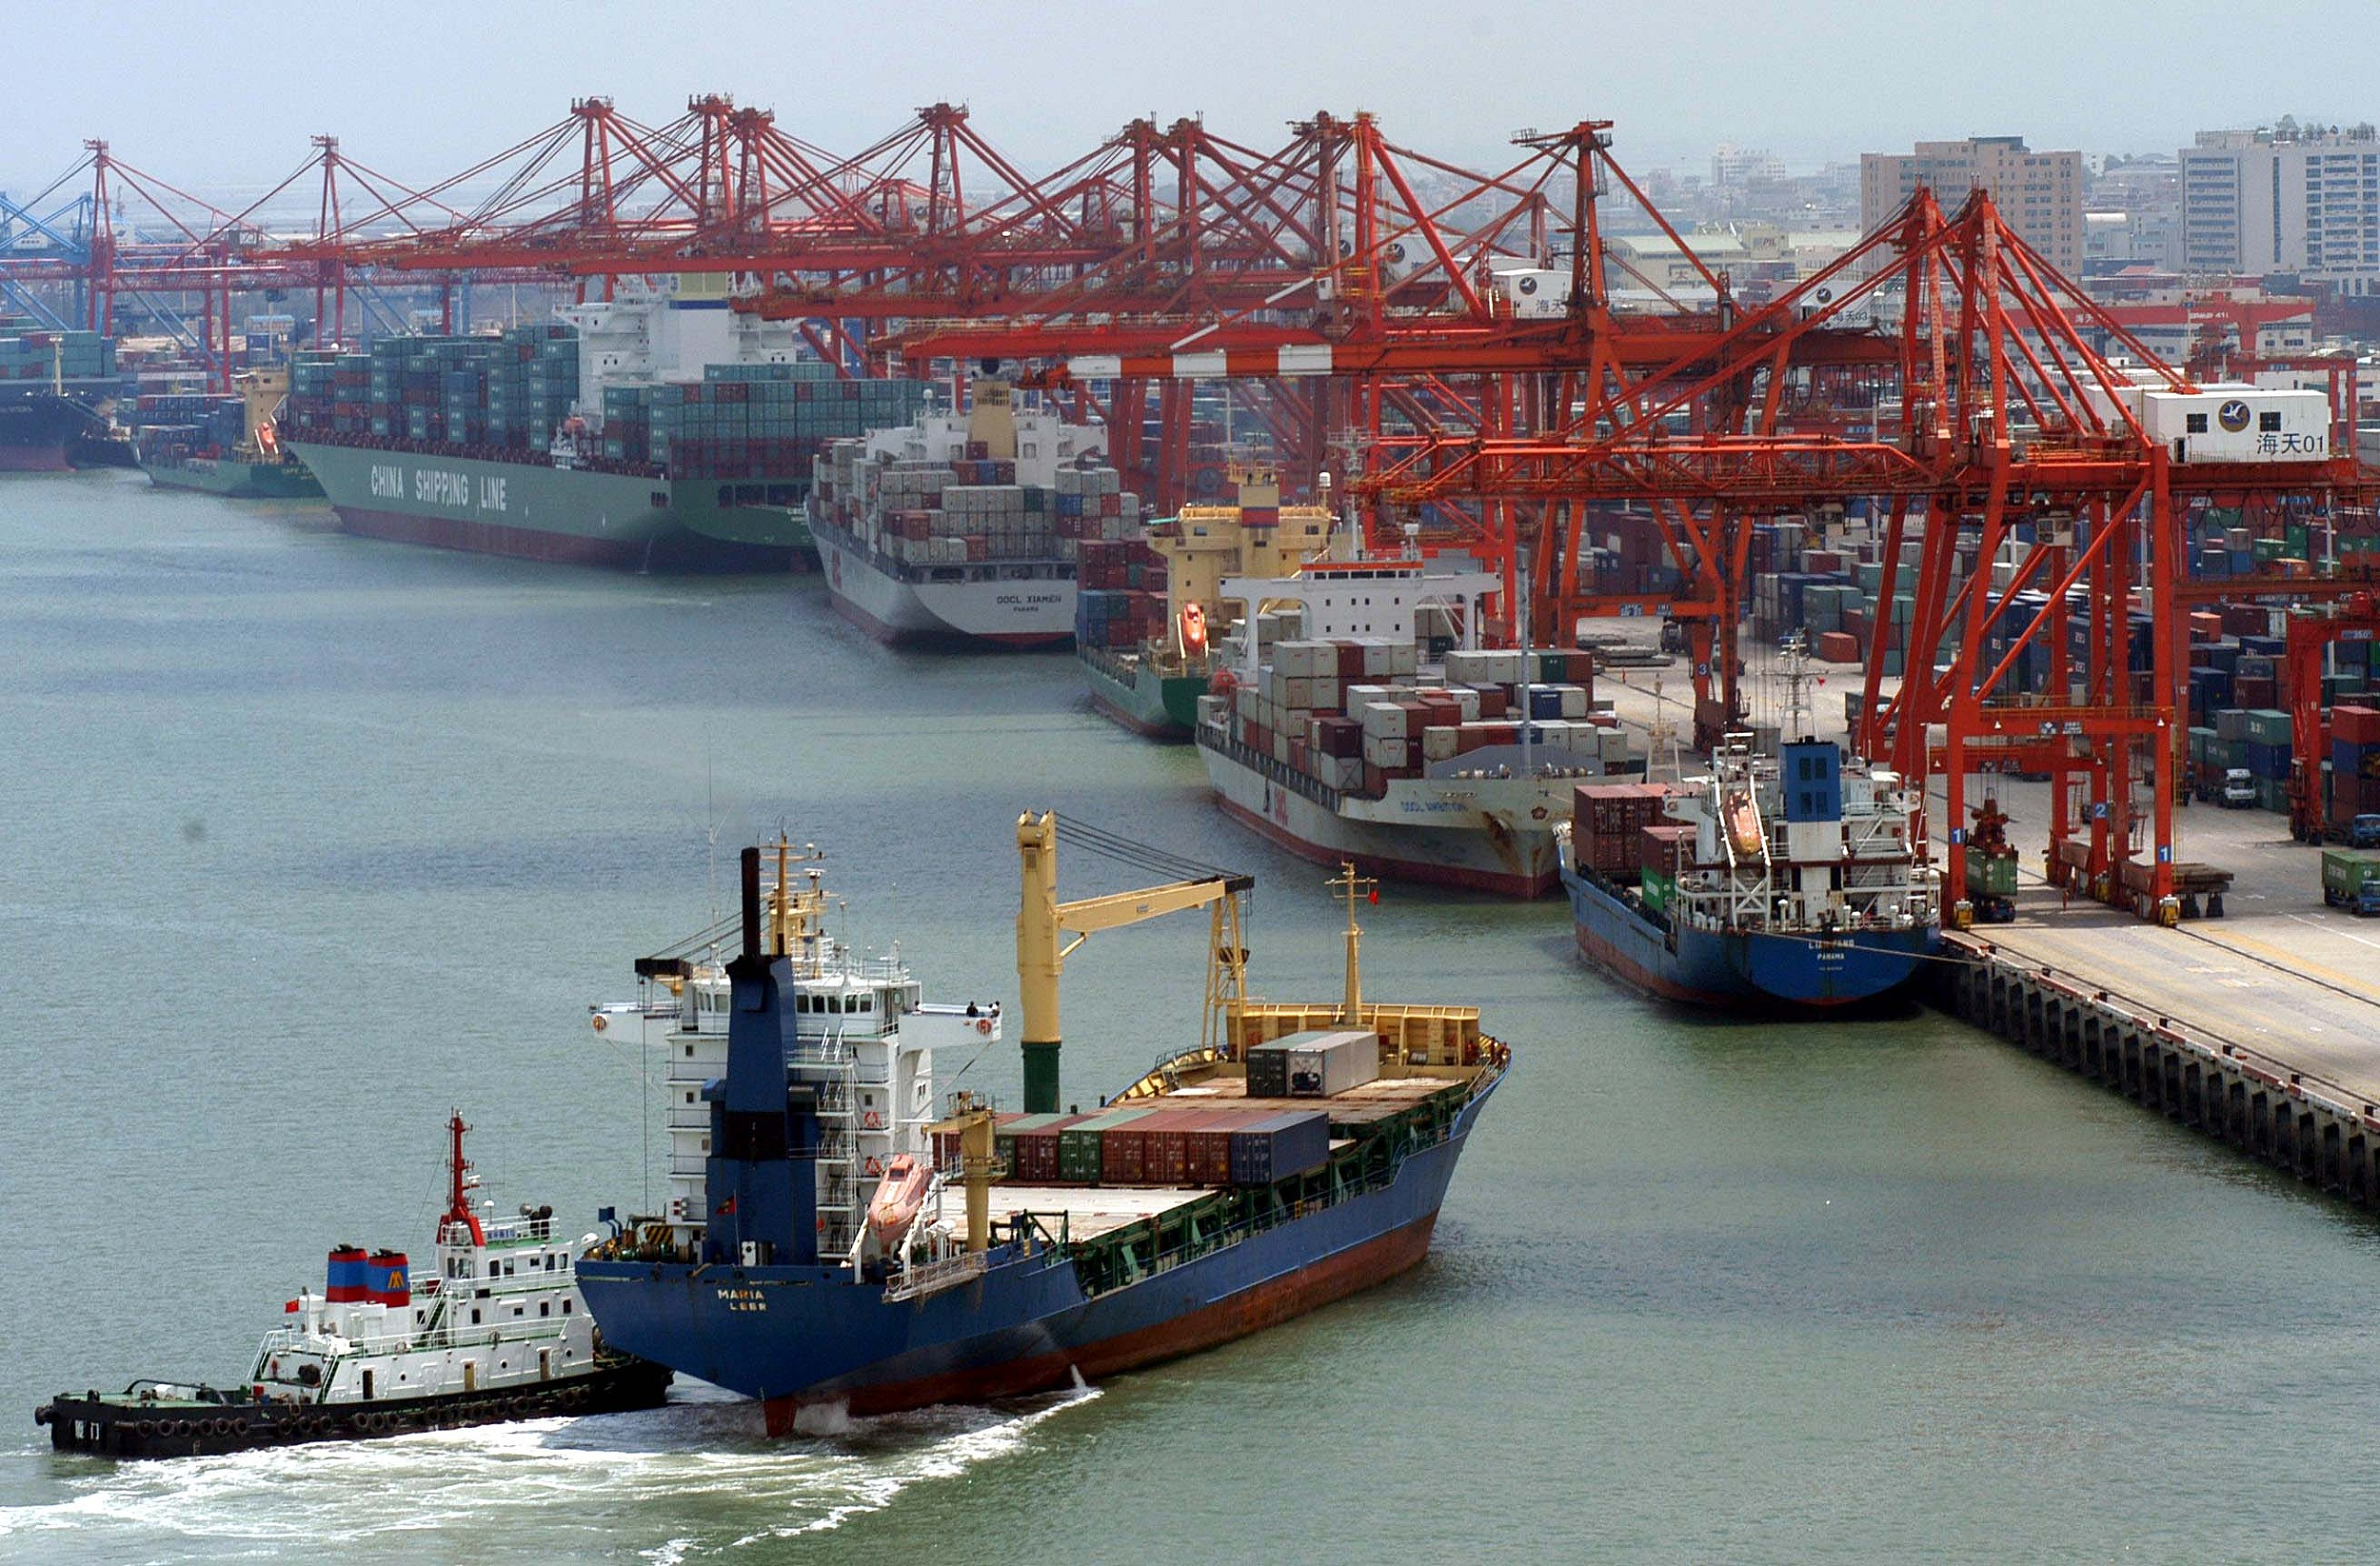 A cargo ship heads into the port of Xiamen in East China's Fujian province in November 2005. Photo: VCG